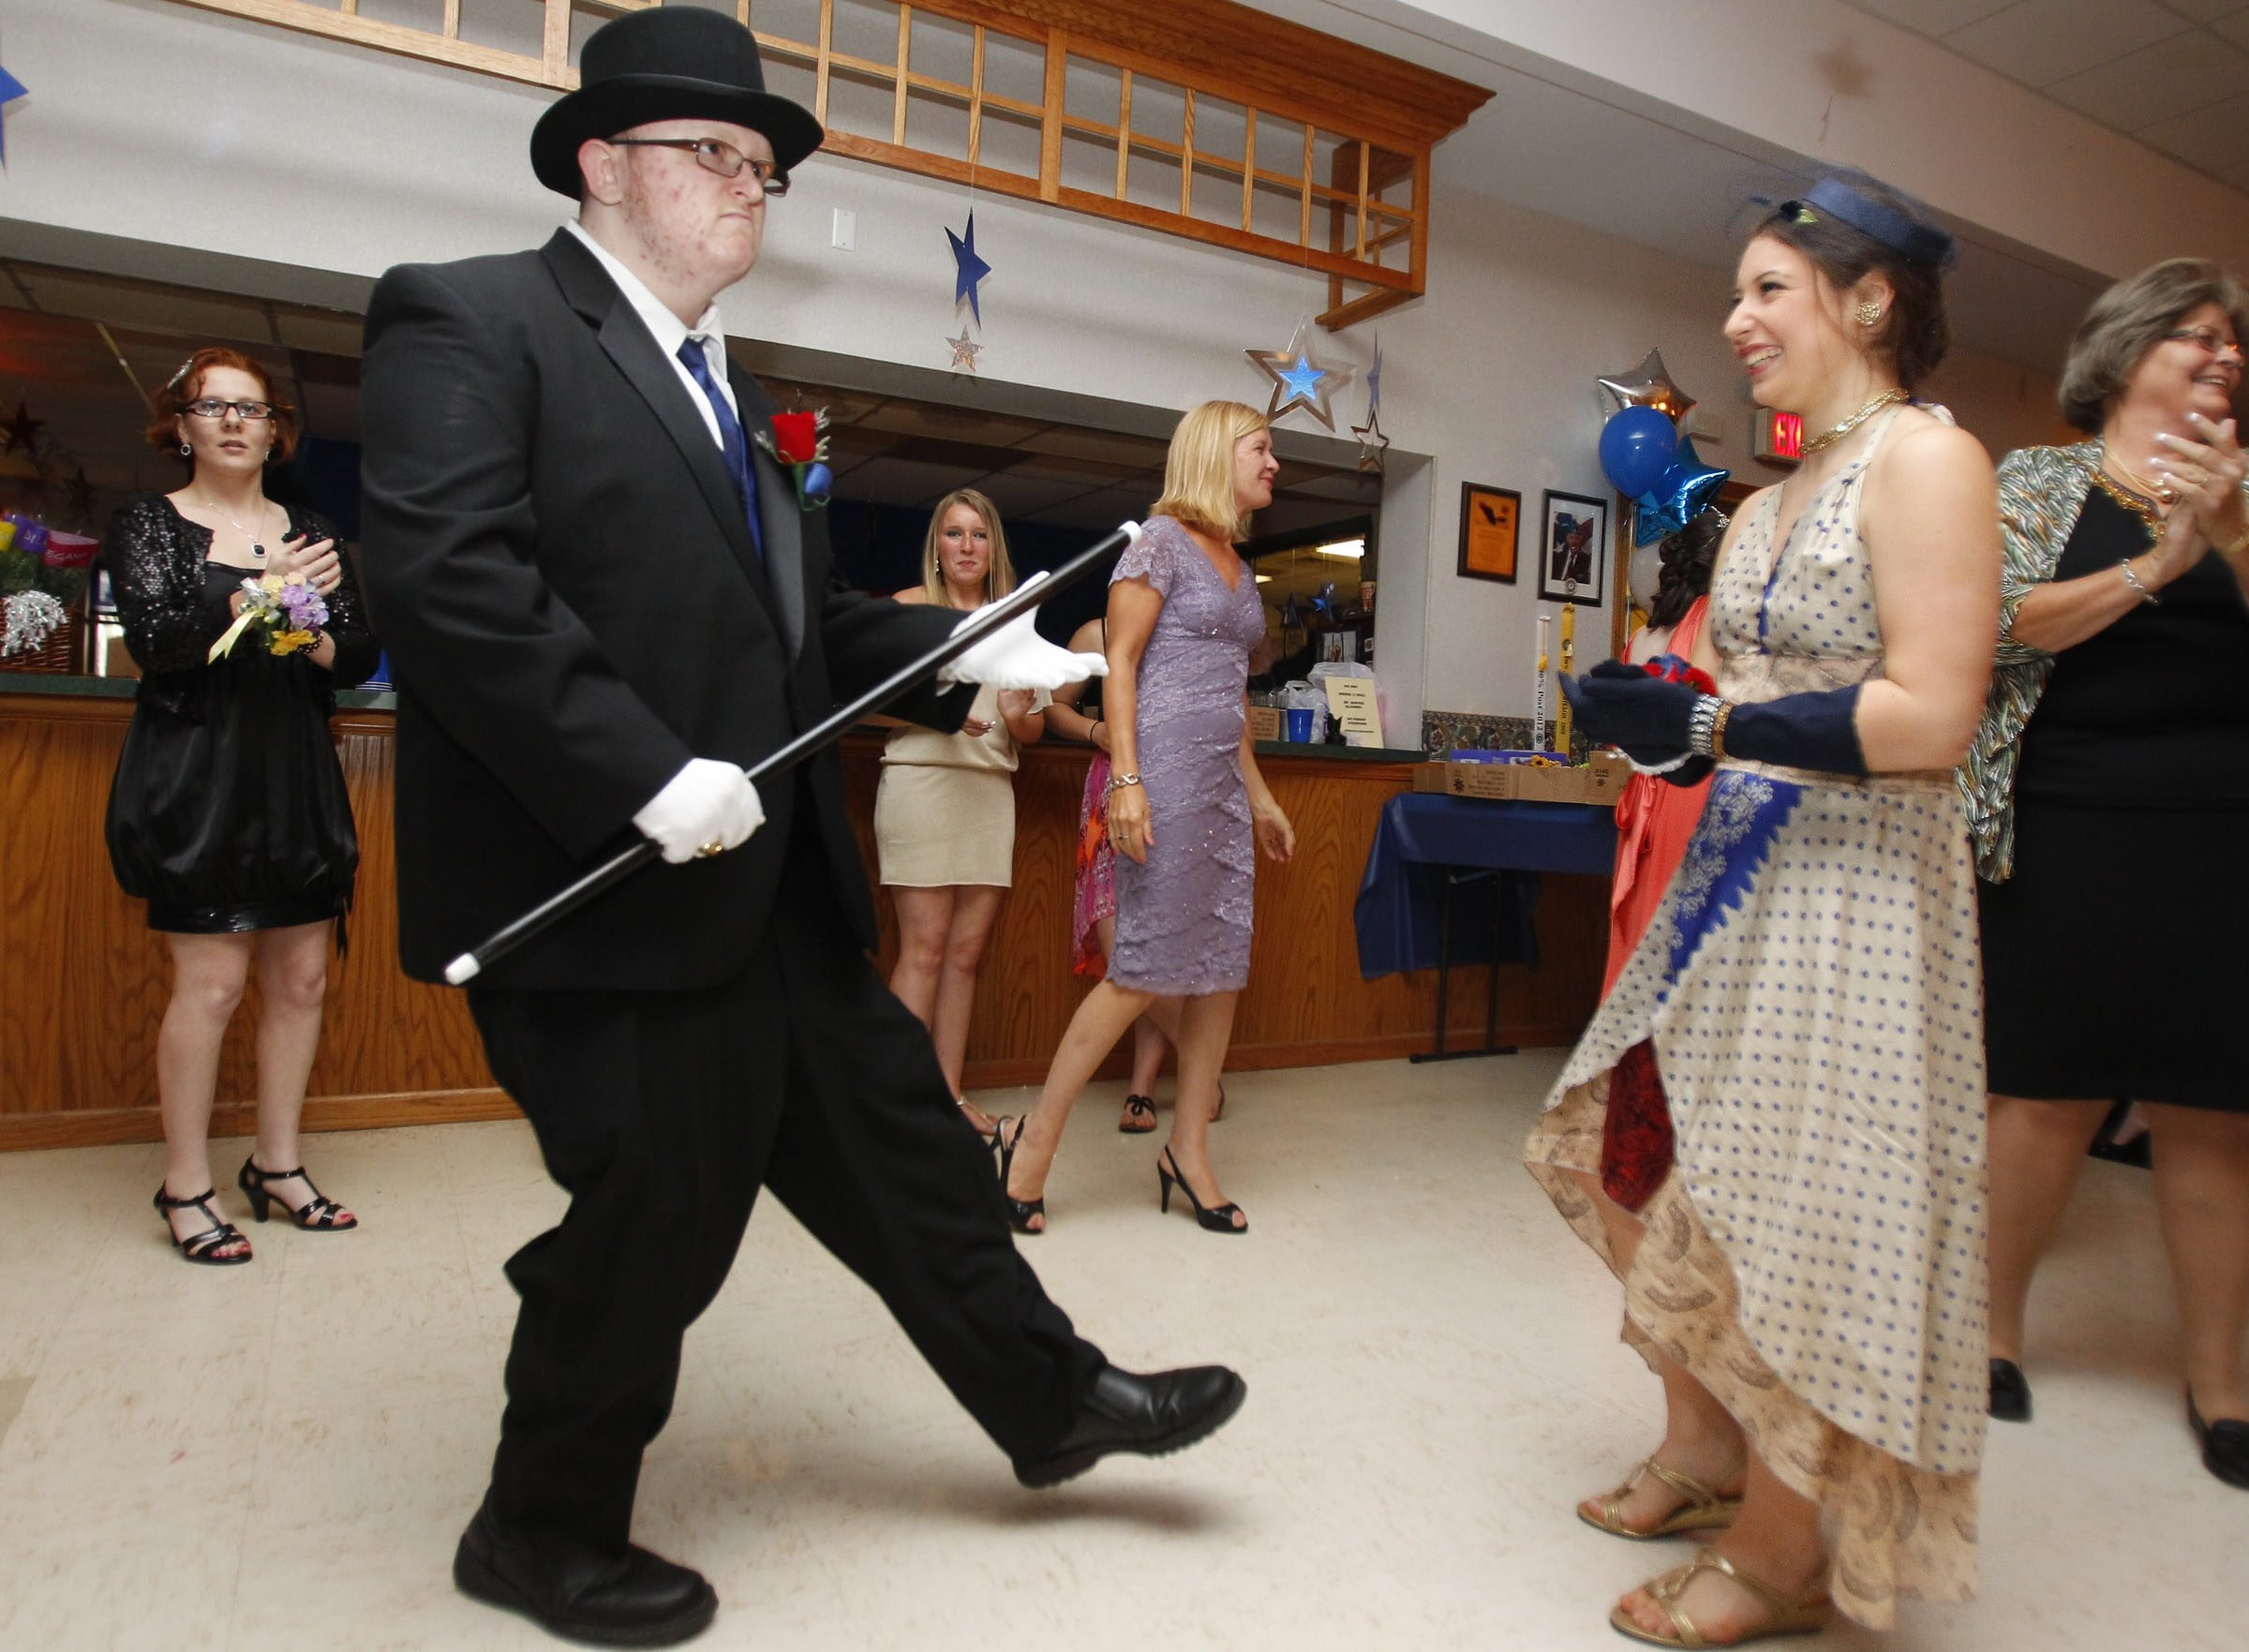 Justin Schuh, 21, and his date, Isabella Constantino, 19, dance during a BOCES prom for Special Ed students on Friday.